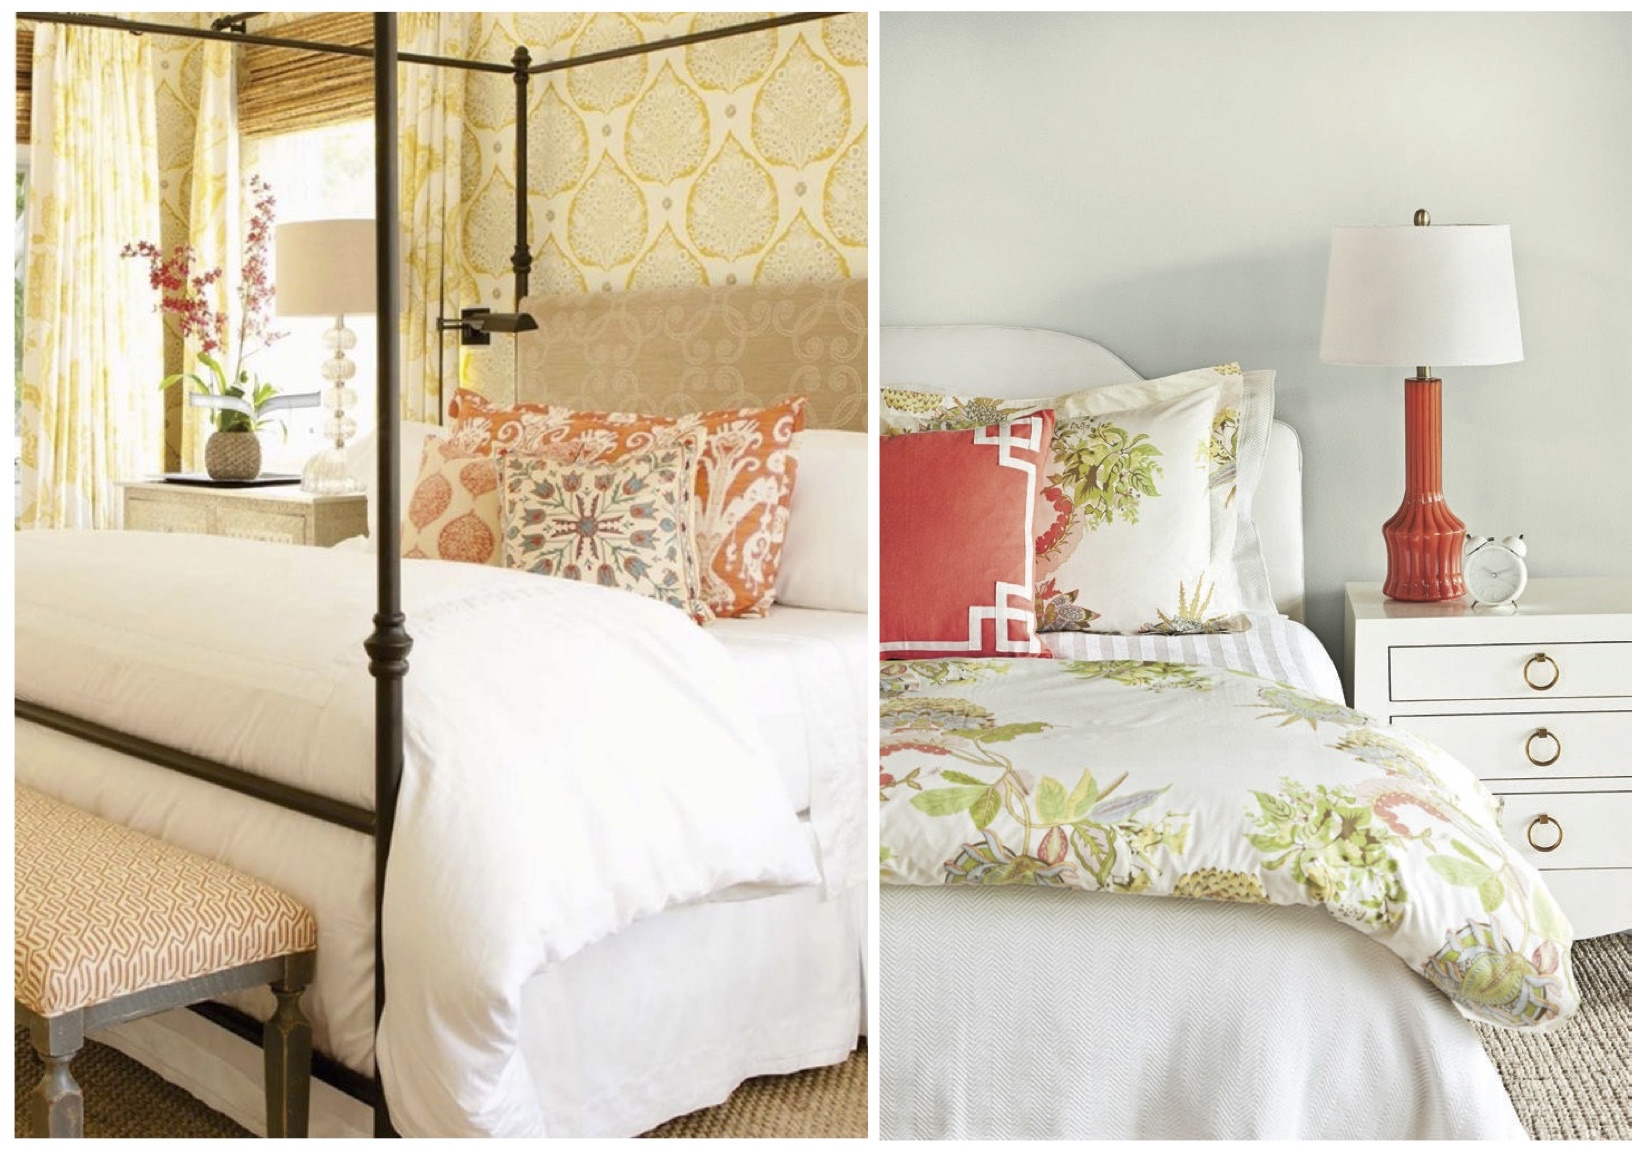 Again, swapping out accent the pillows, throw blankets or coverlets is a very easy way to mix it up for spring! OR something that I love to do is to have a whole different bedding set for the spring/summer season -duvet, shams, sheets, throw pillows and blankets.